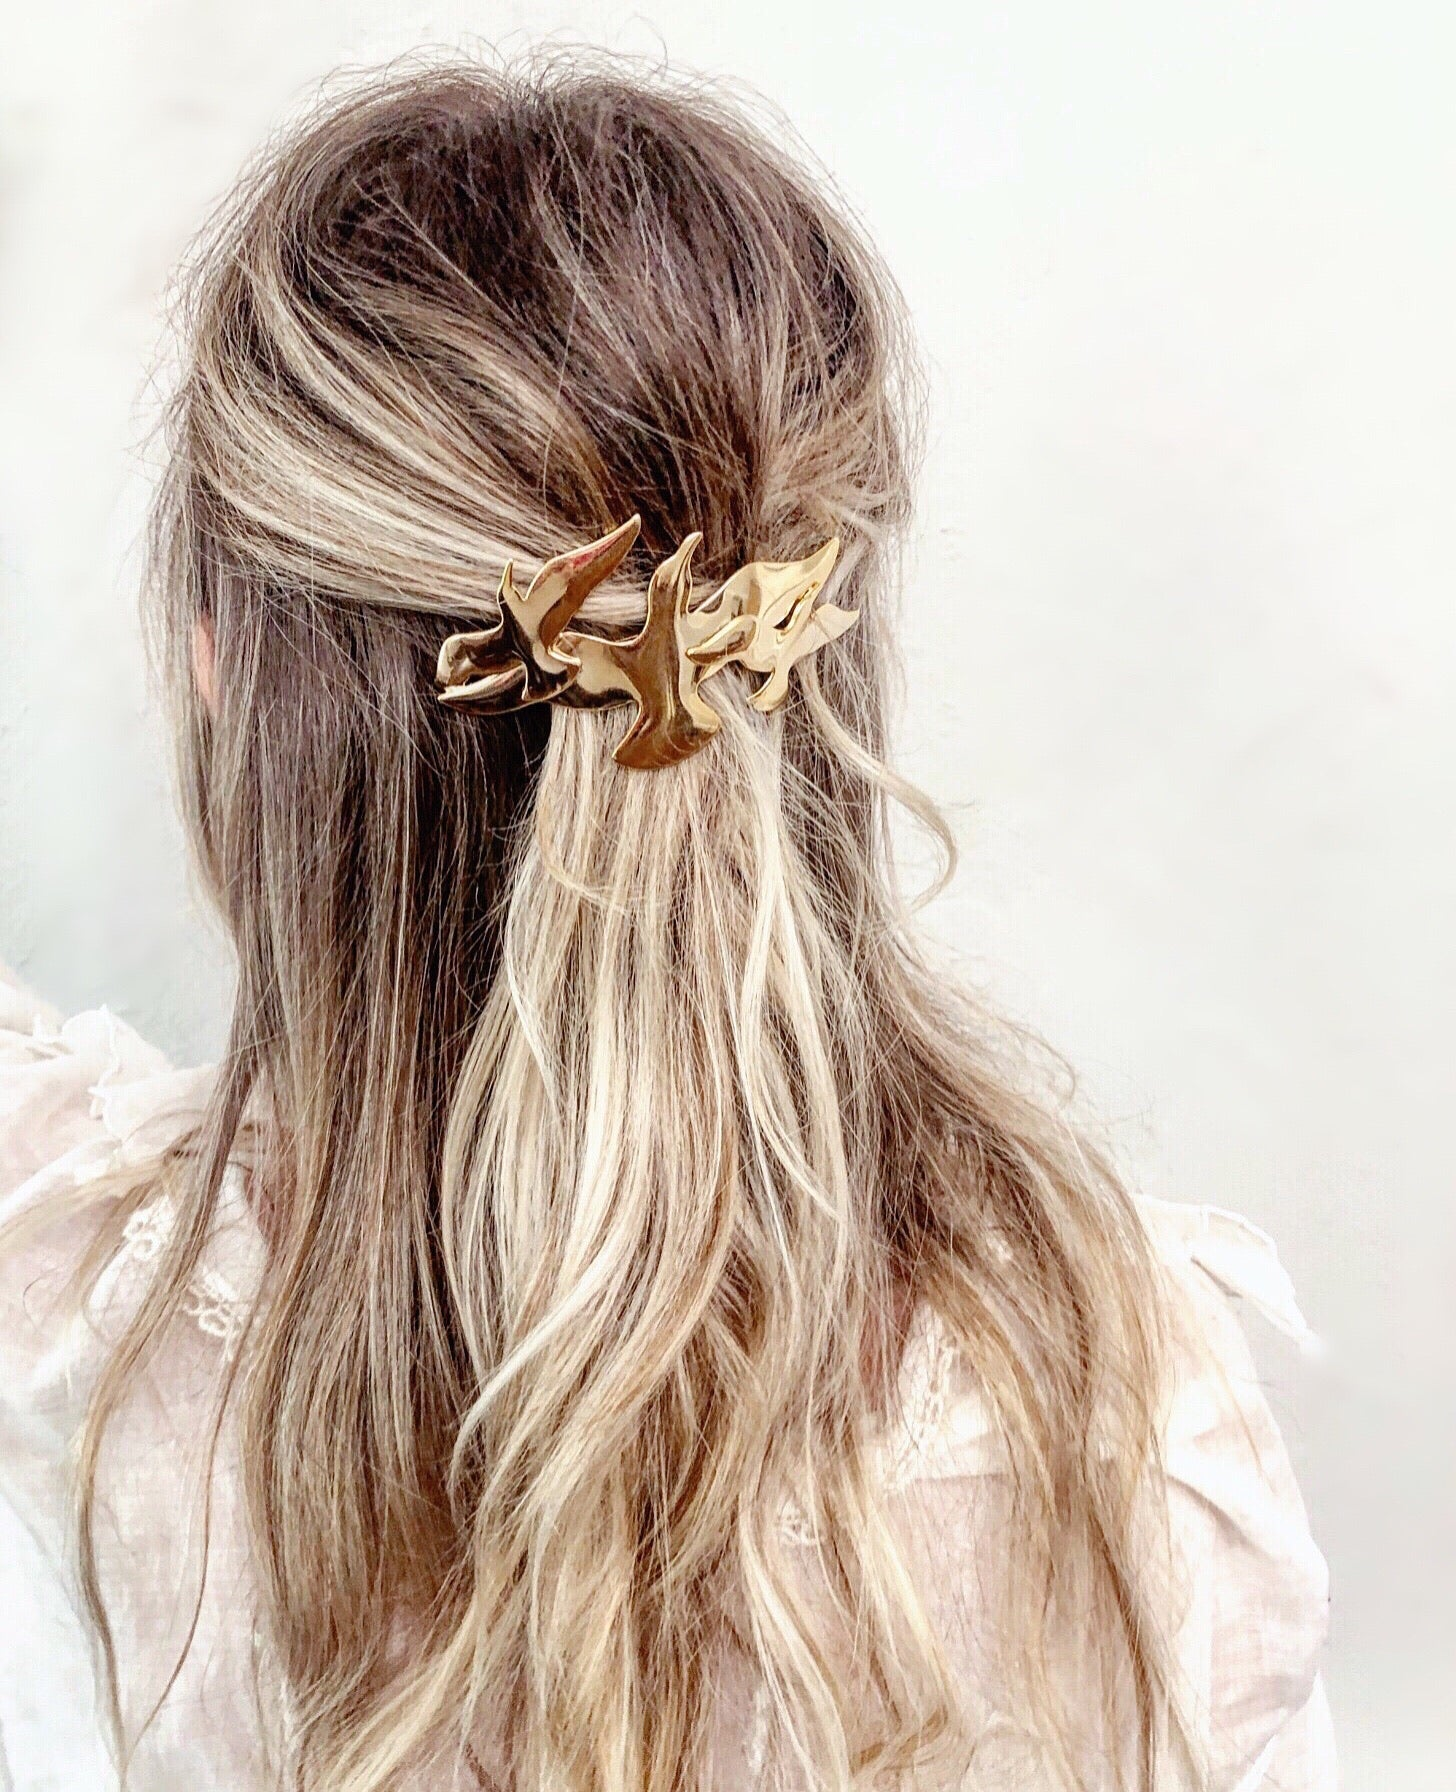 GOLDEN WINGS BARRETTE